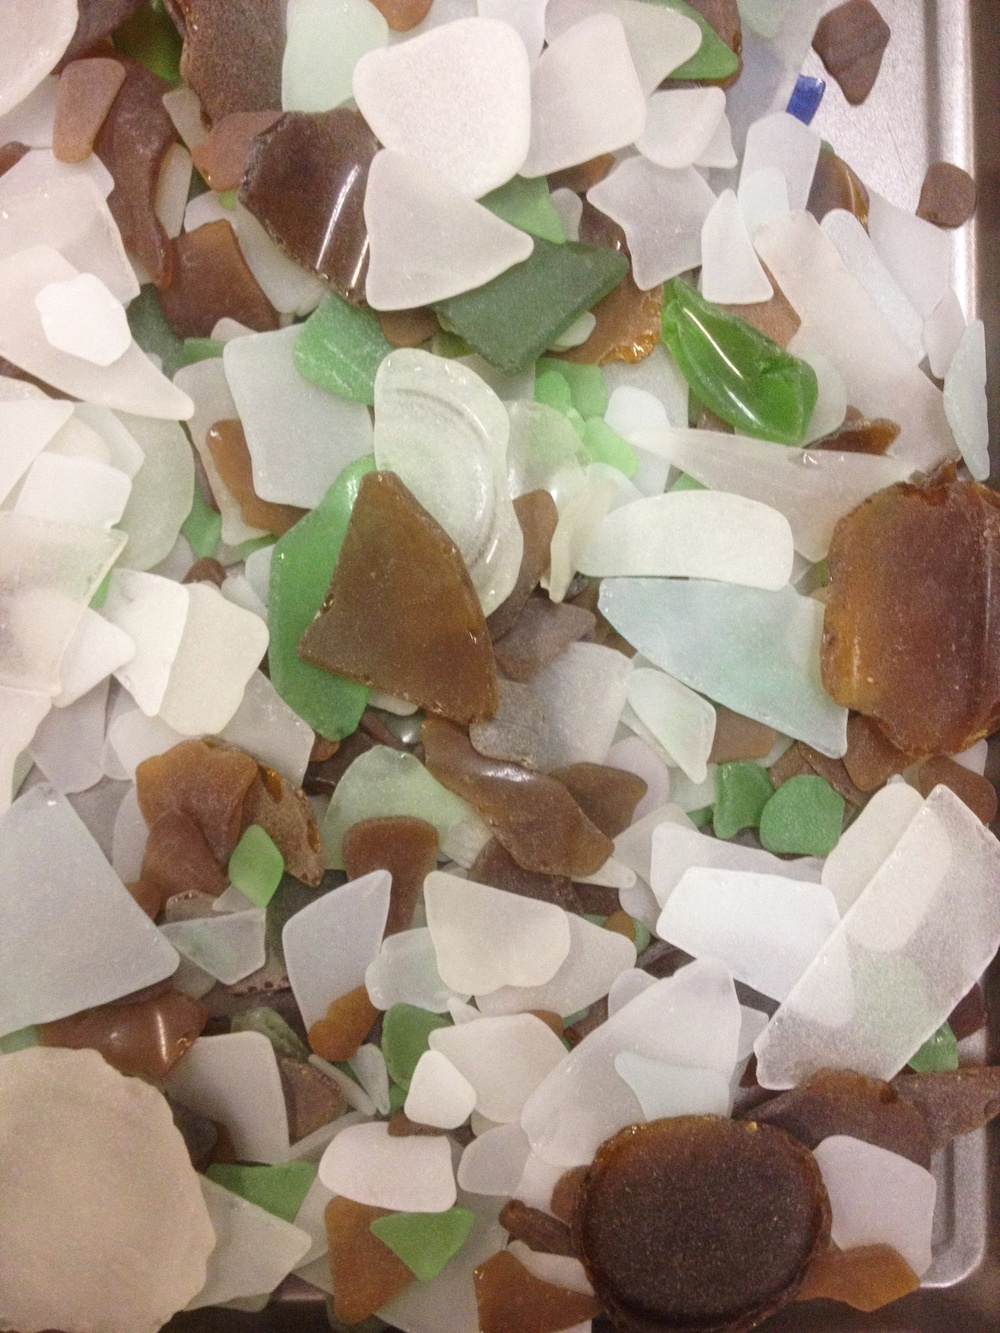 Seaglass material for a custom mosaic